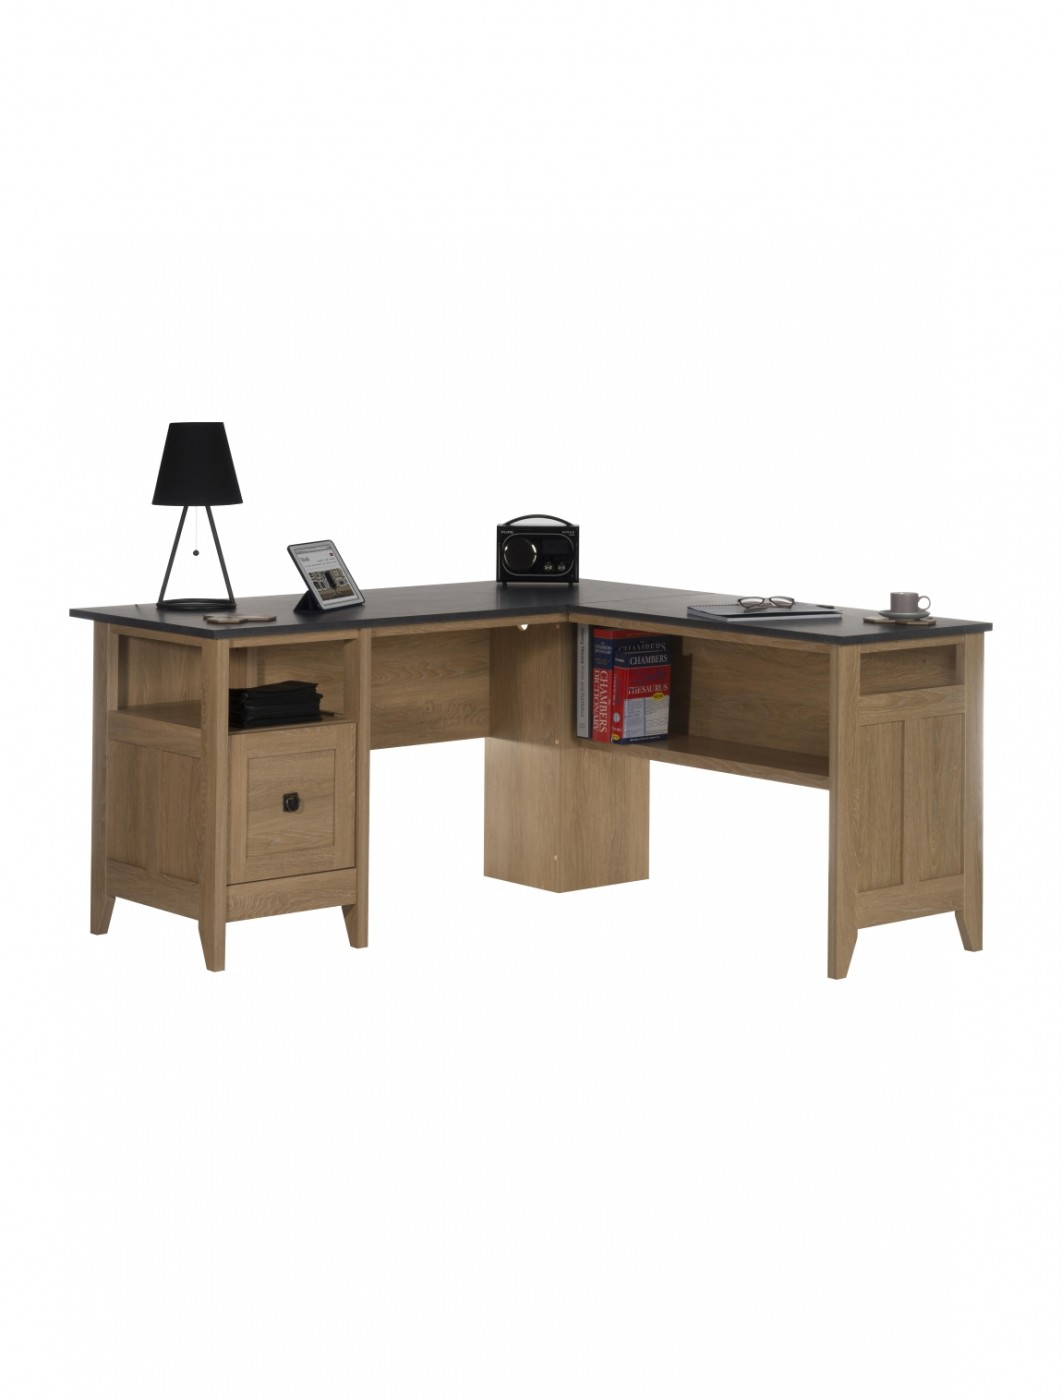 Home Office Desks - Teknik L-Shaped Study Desk 5412320 | 121 Office ...